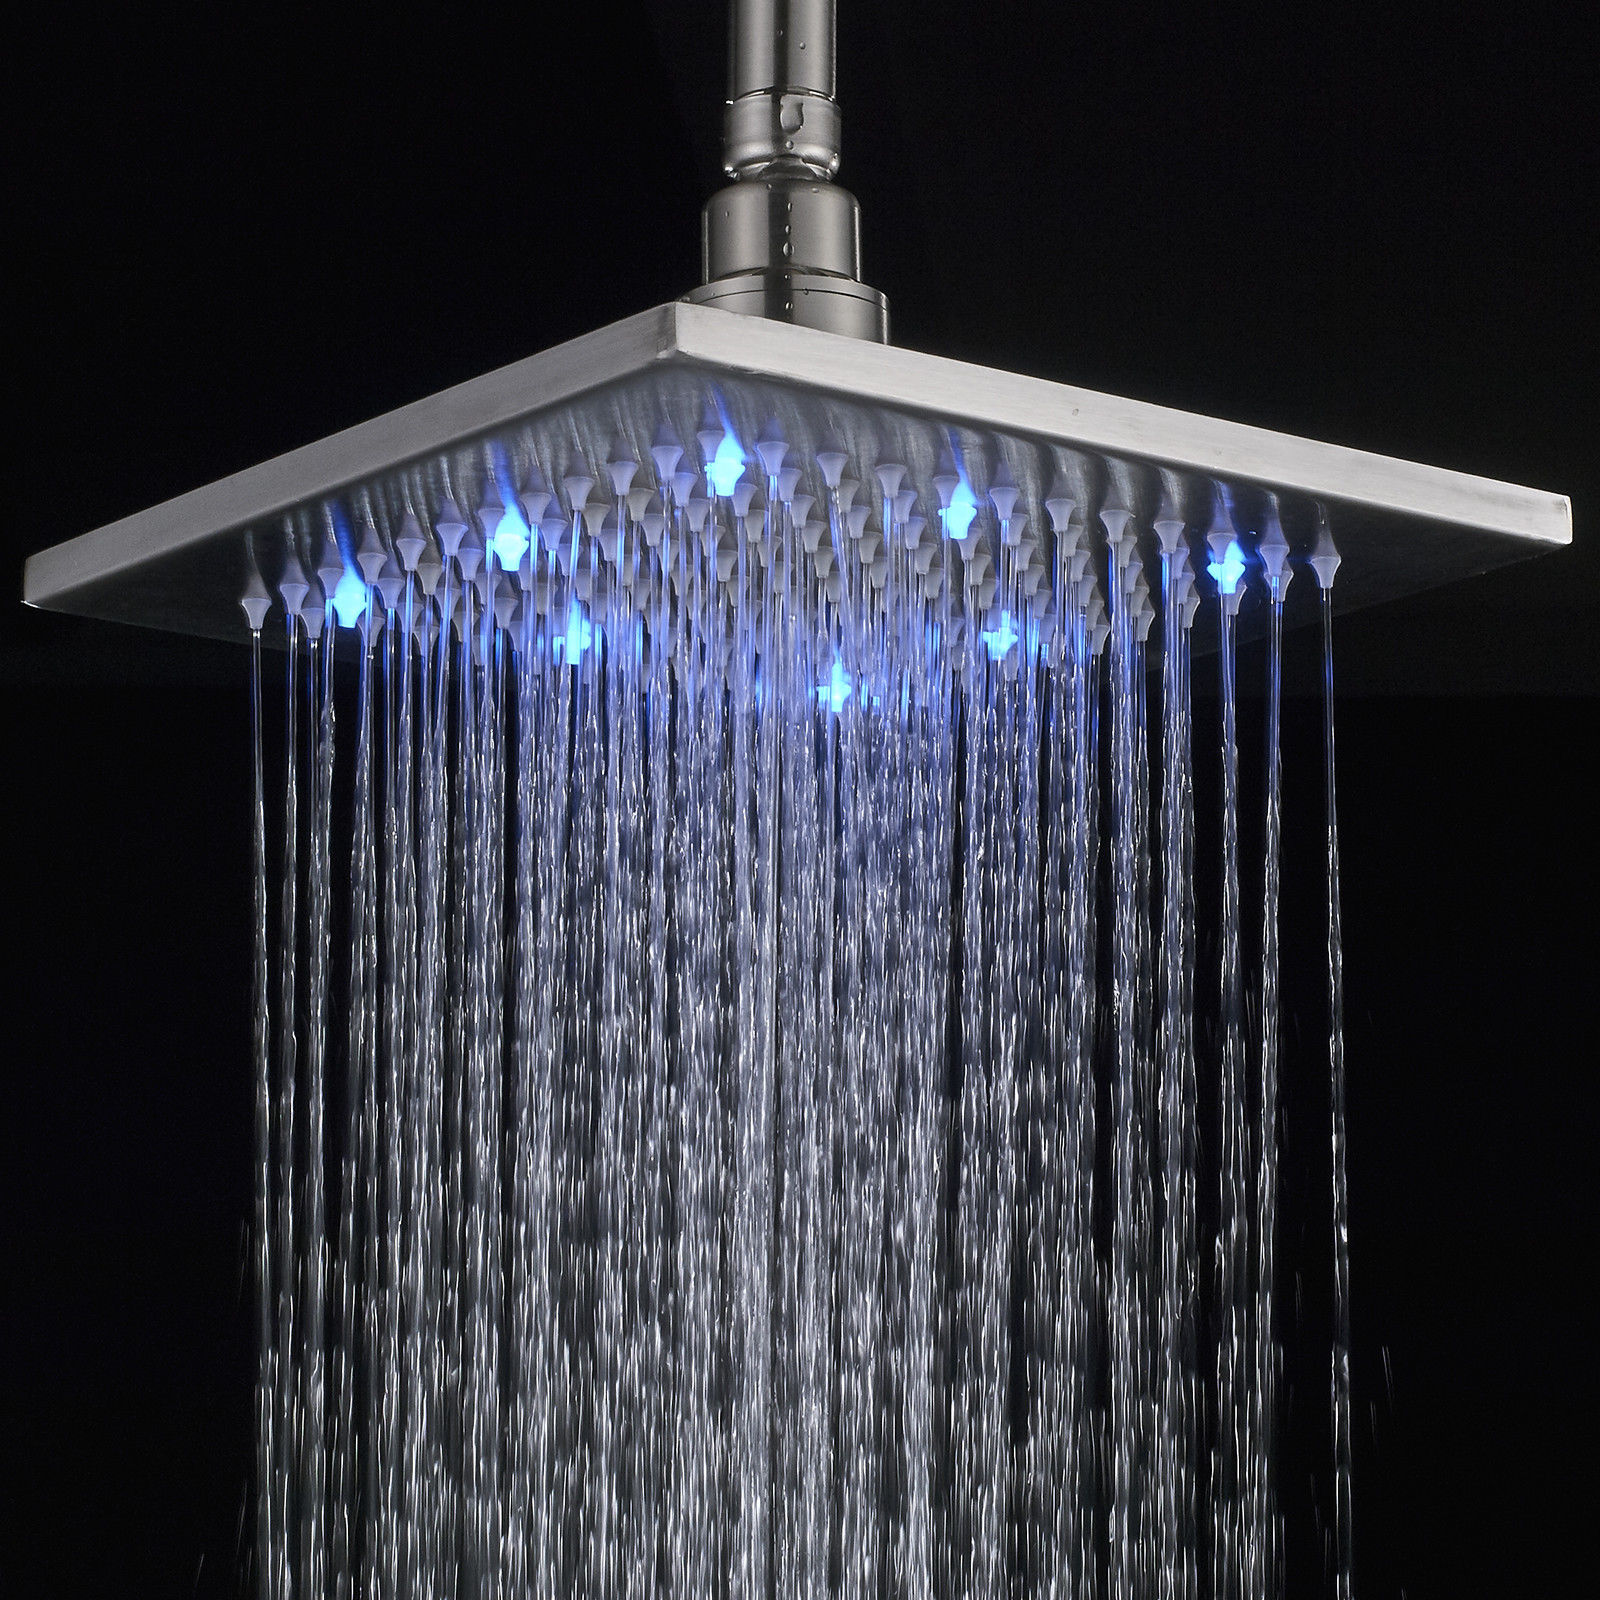 Details About 16 Inch Led Rainfall Shower Head Faucet Wall Mount Shower Arm Brushed Nickel Tap